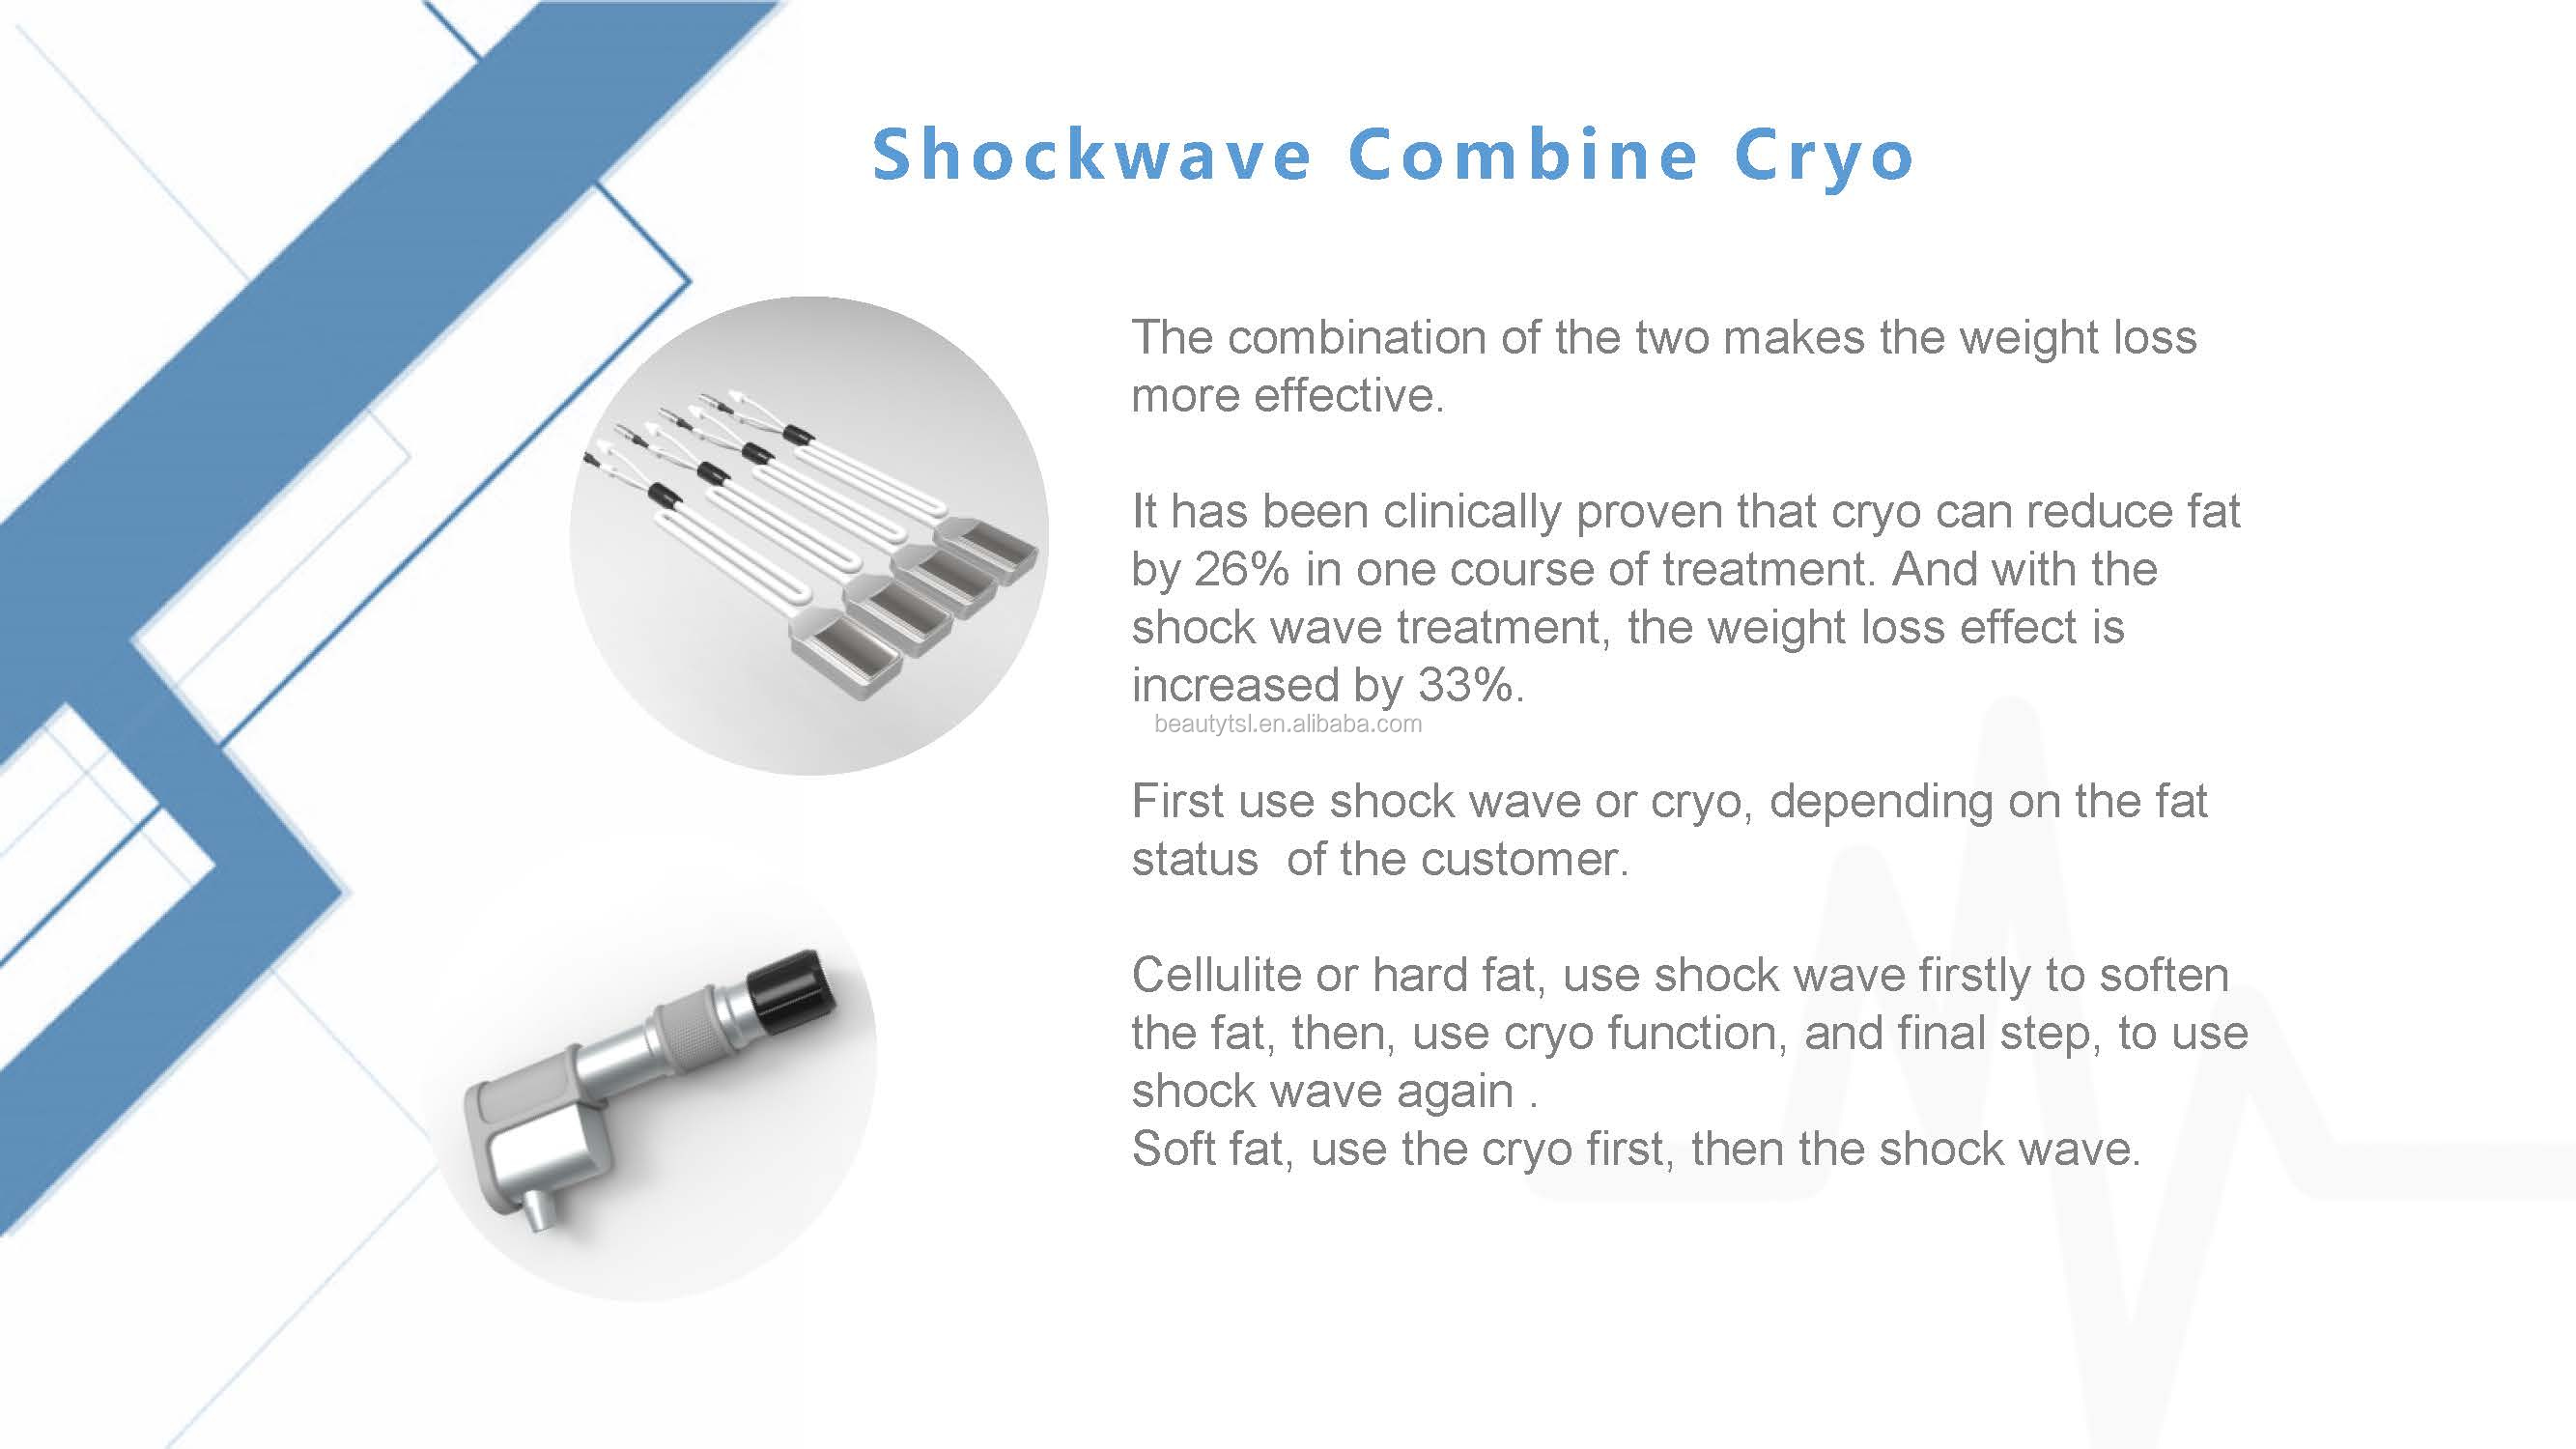 LINGMEI new technology combined cryo +ems in one pad cryo therapy shock wave cellulite removal machine 2.jpg